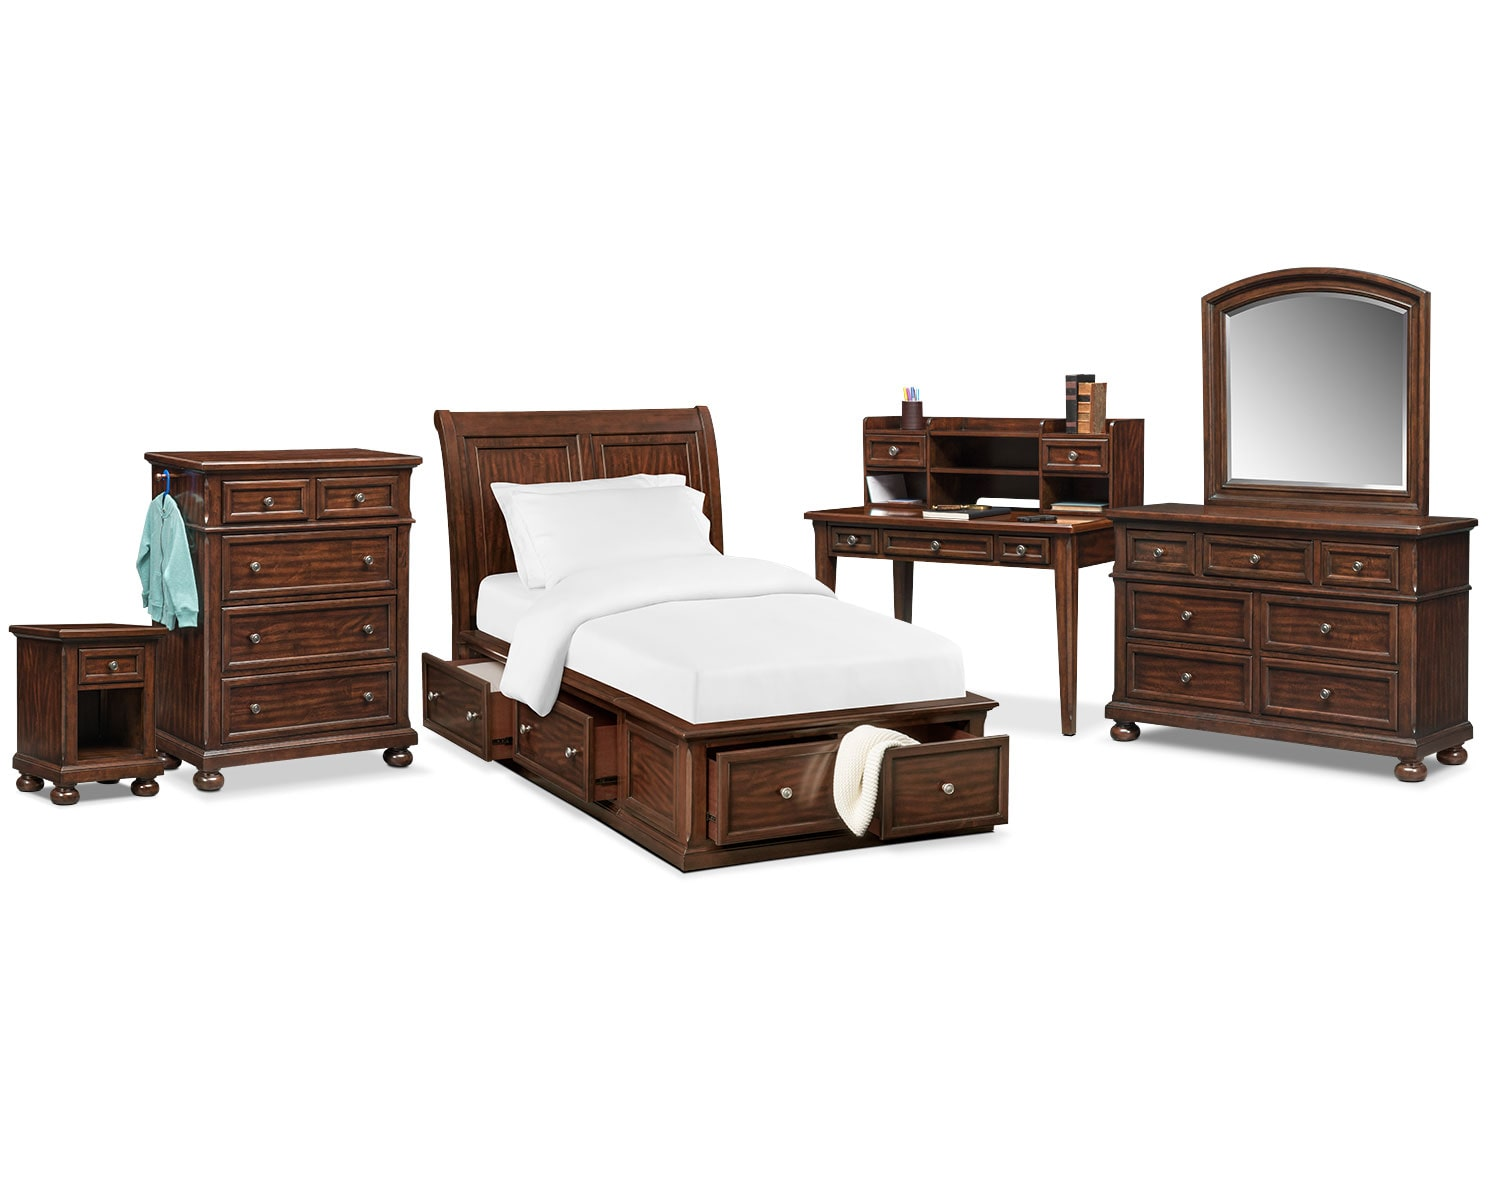 The Hanover Youth Bedroom Collection - Cherry